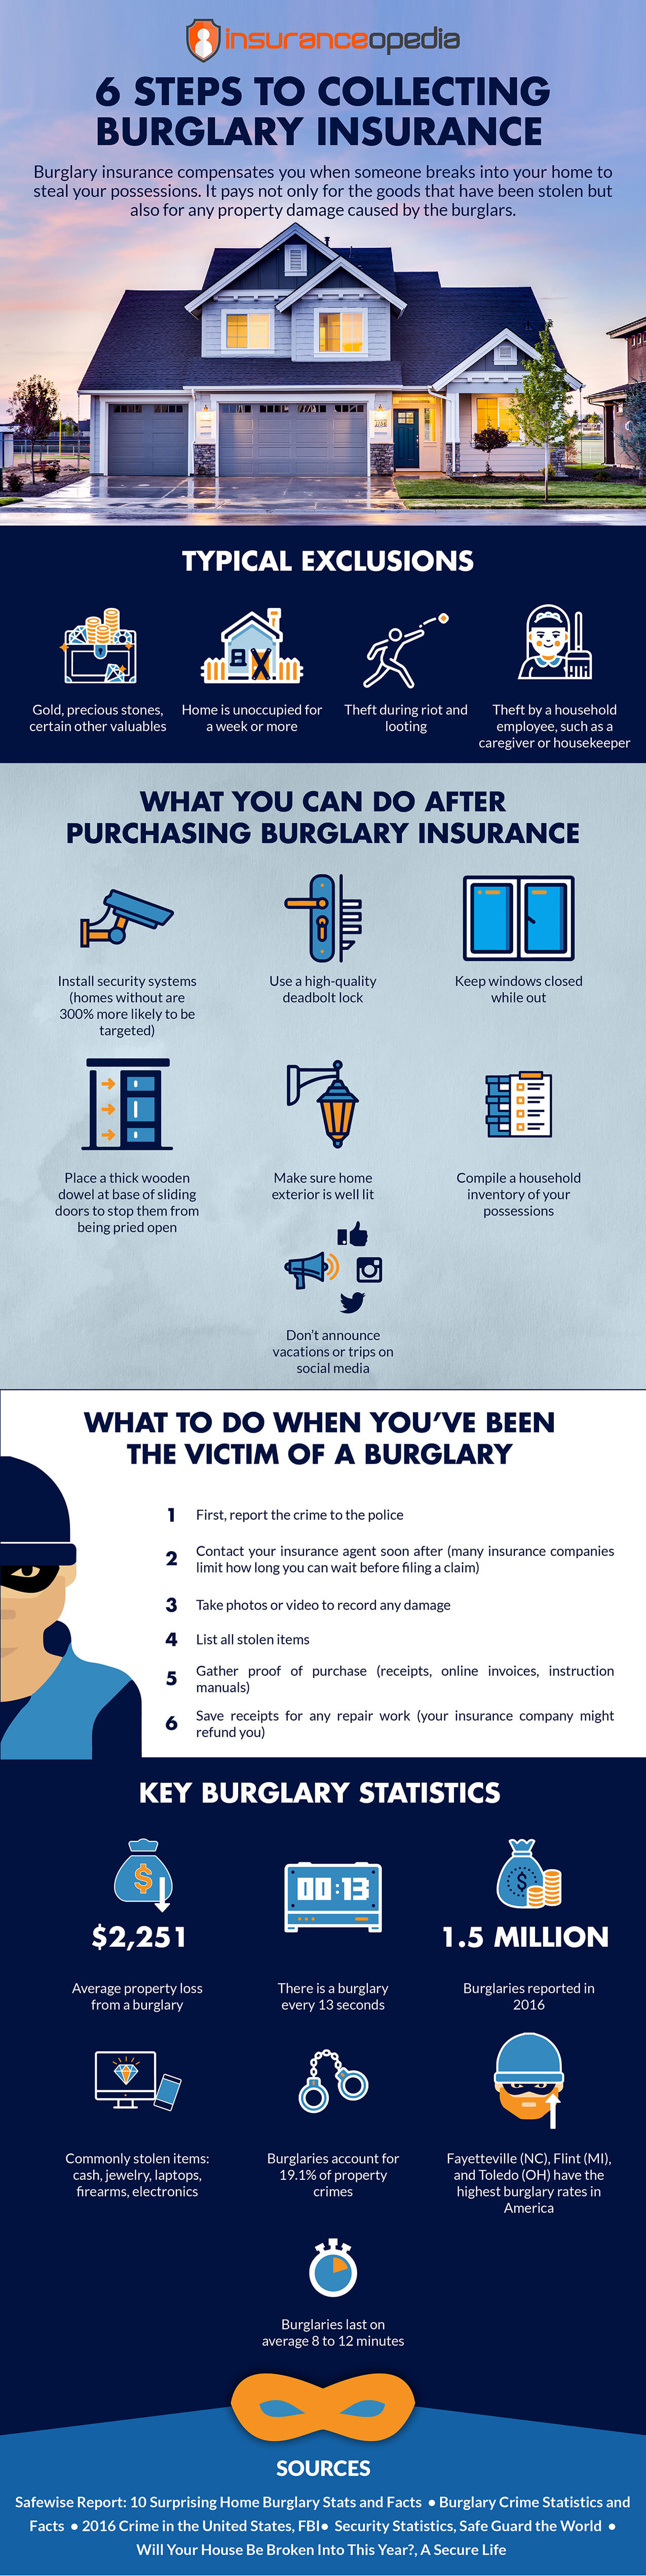 6 Steps to Collecting Burglary Insurance